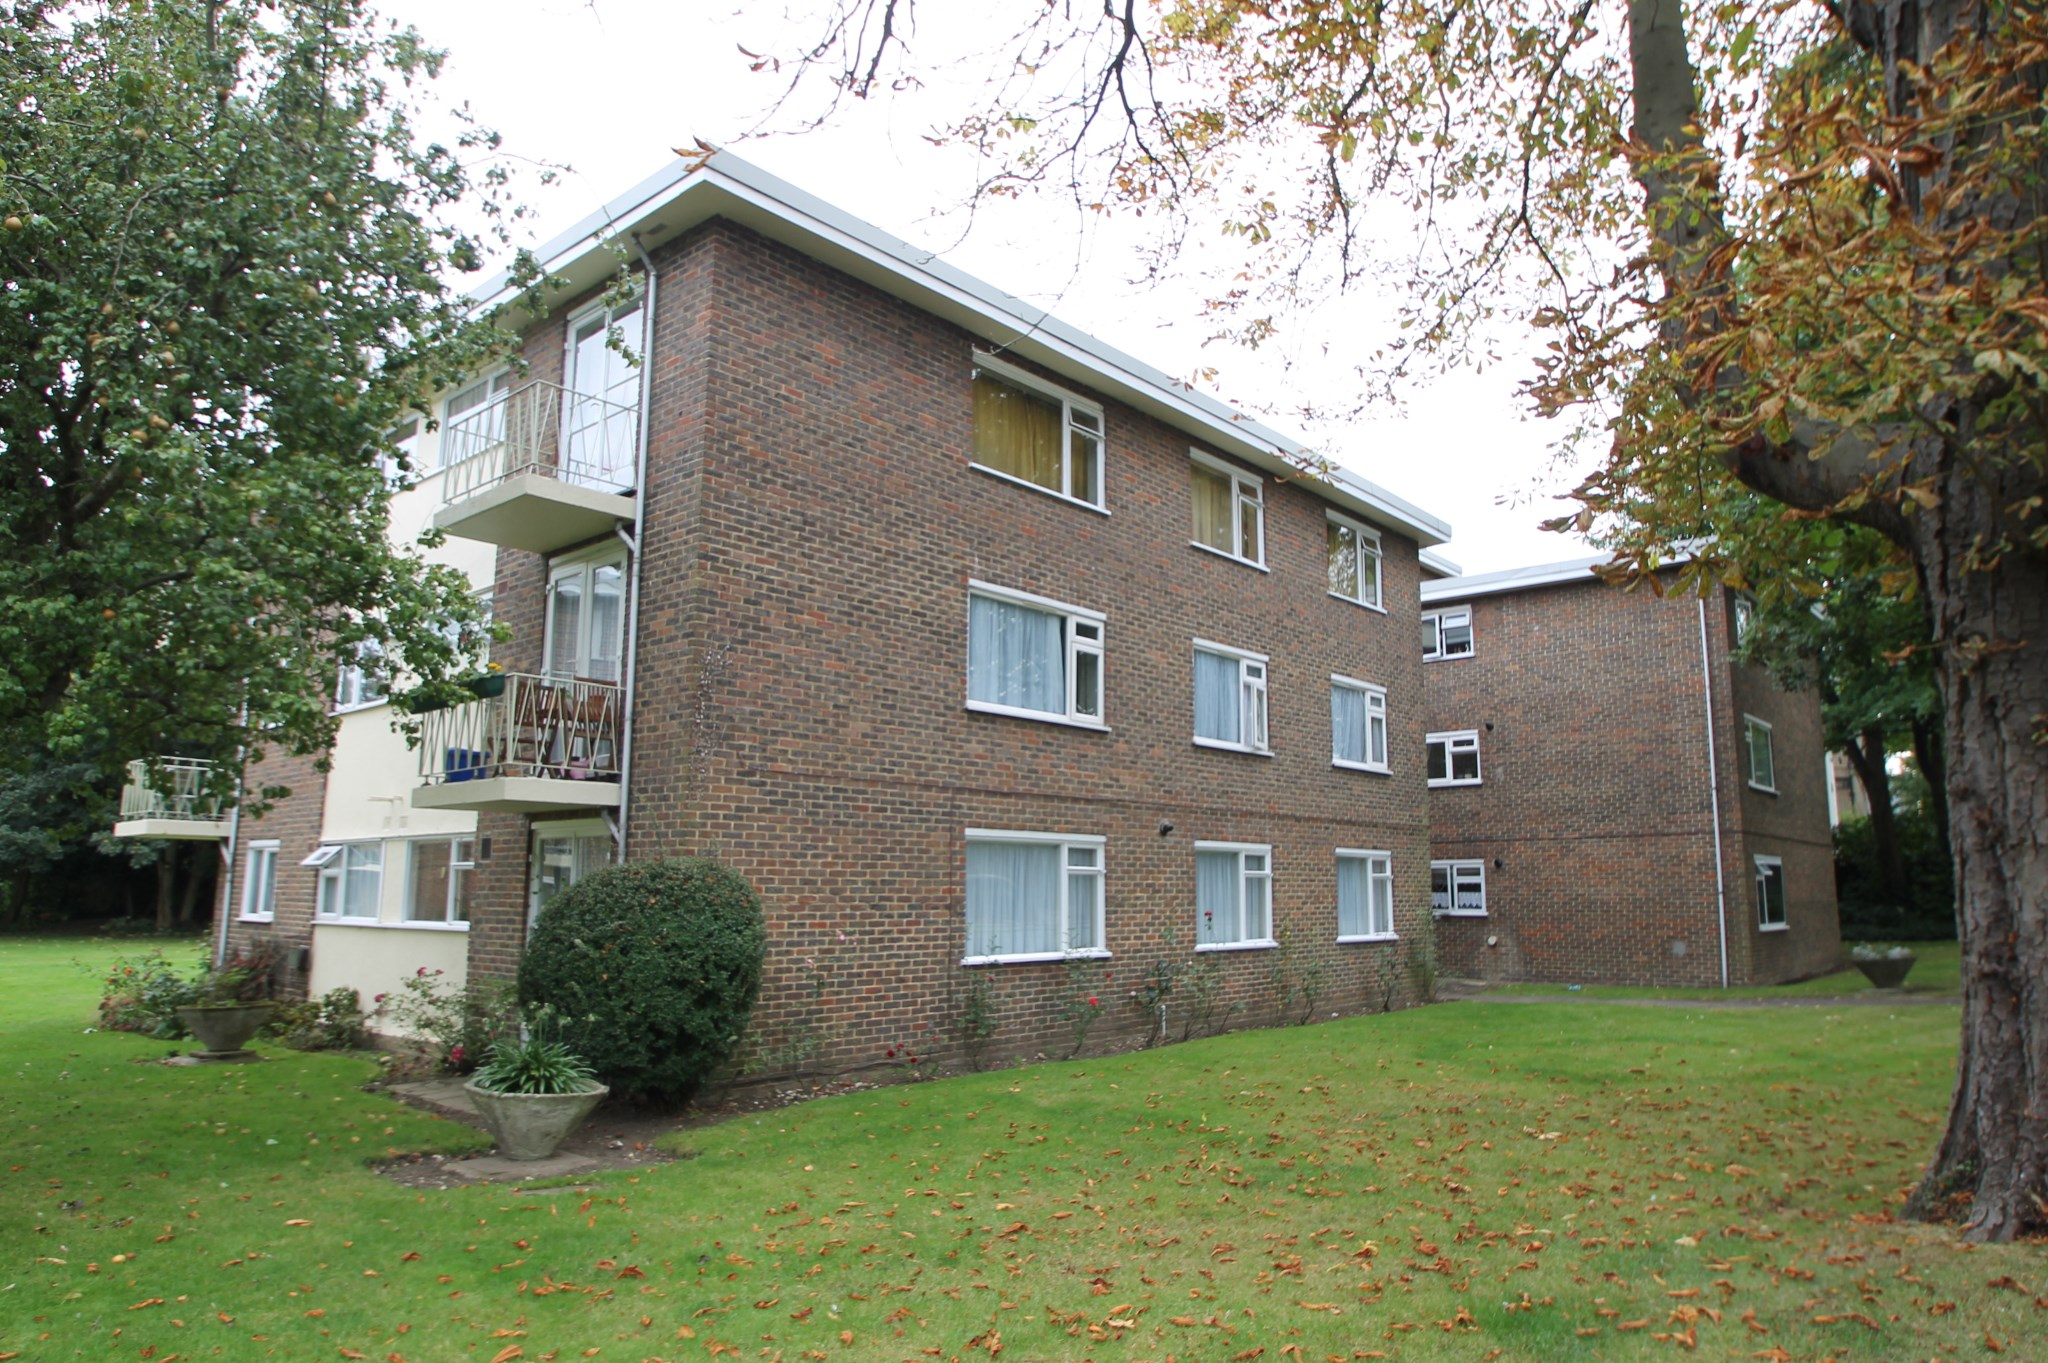 Bramley Hyrst, Bramley Hill, South Croydon, Surrey, CR2